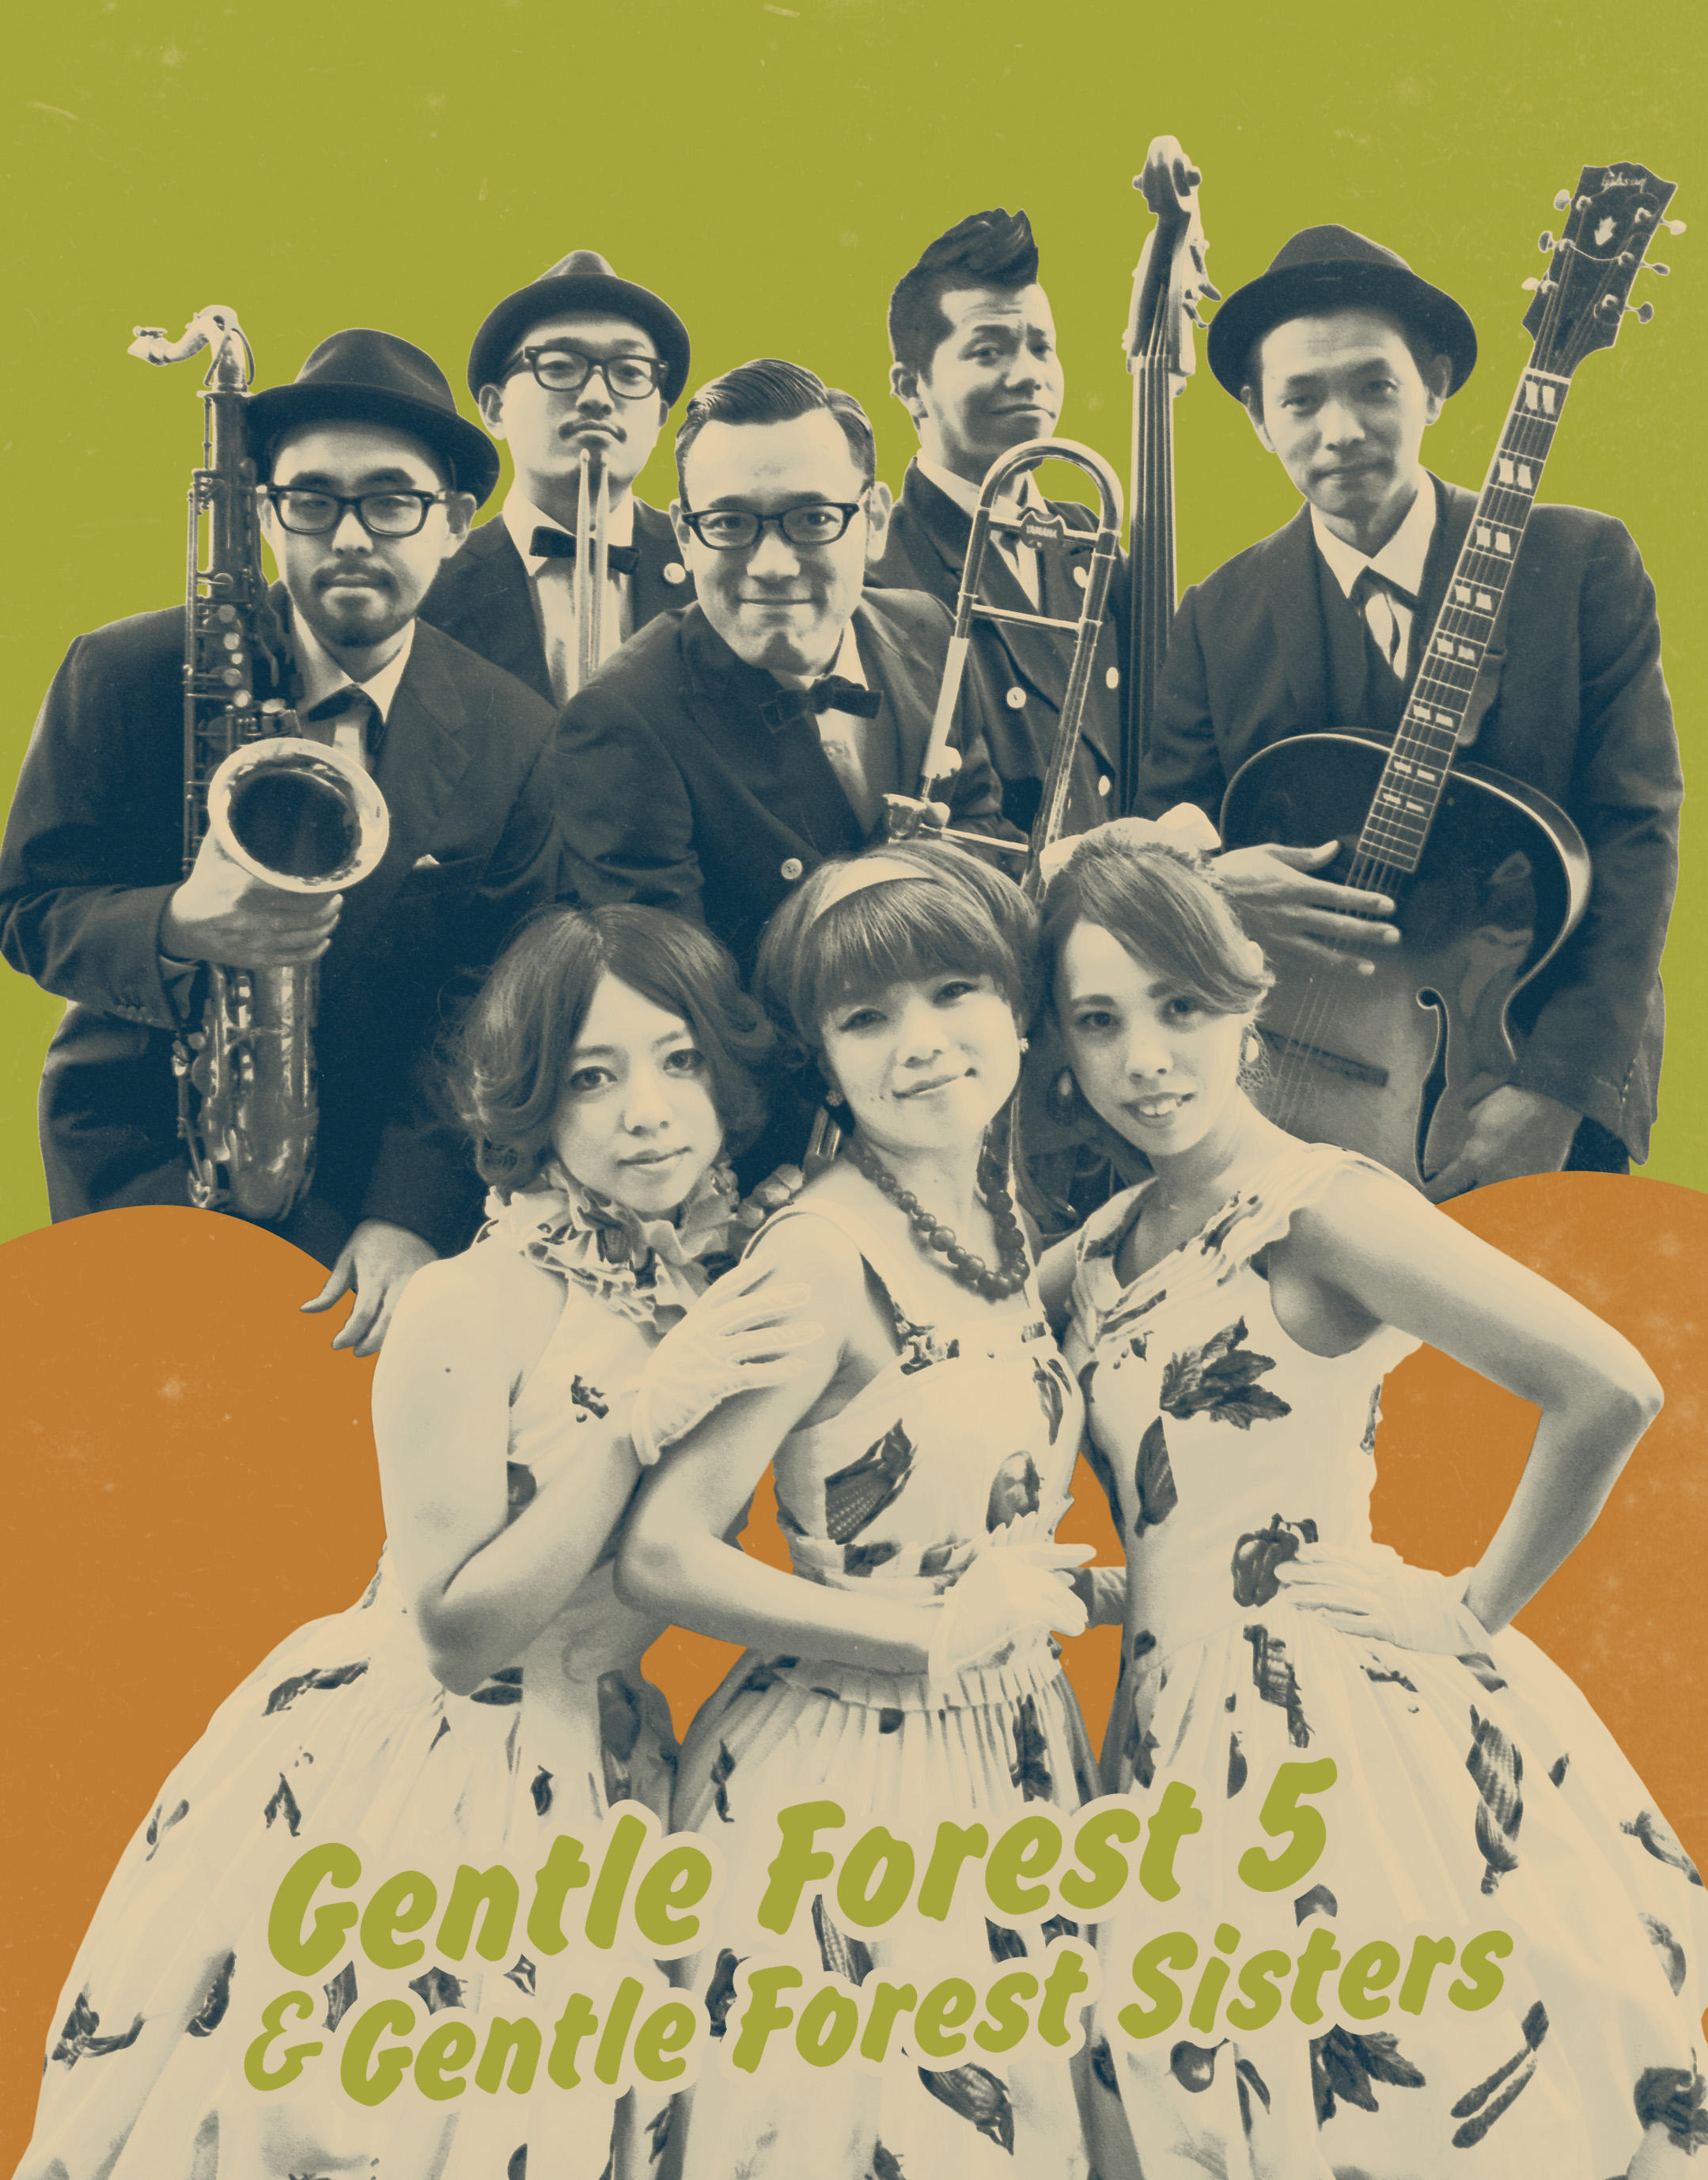 Gentle Forest 5 & Gentle Forest Sisters